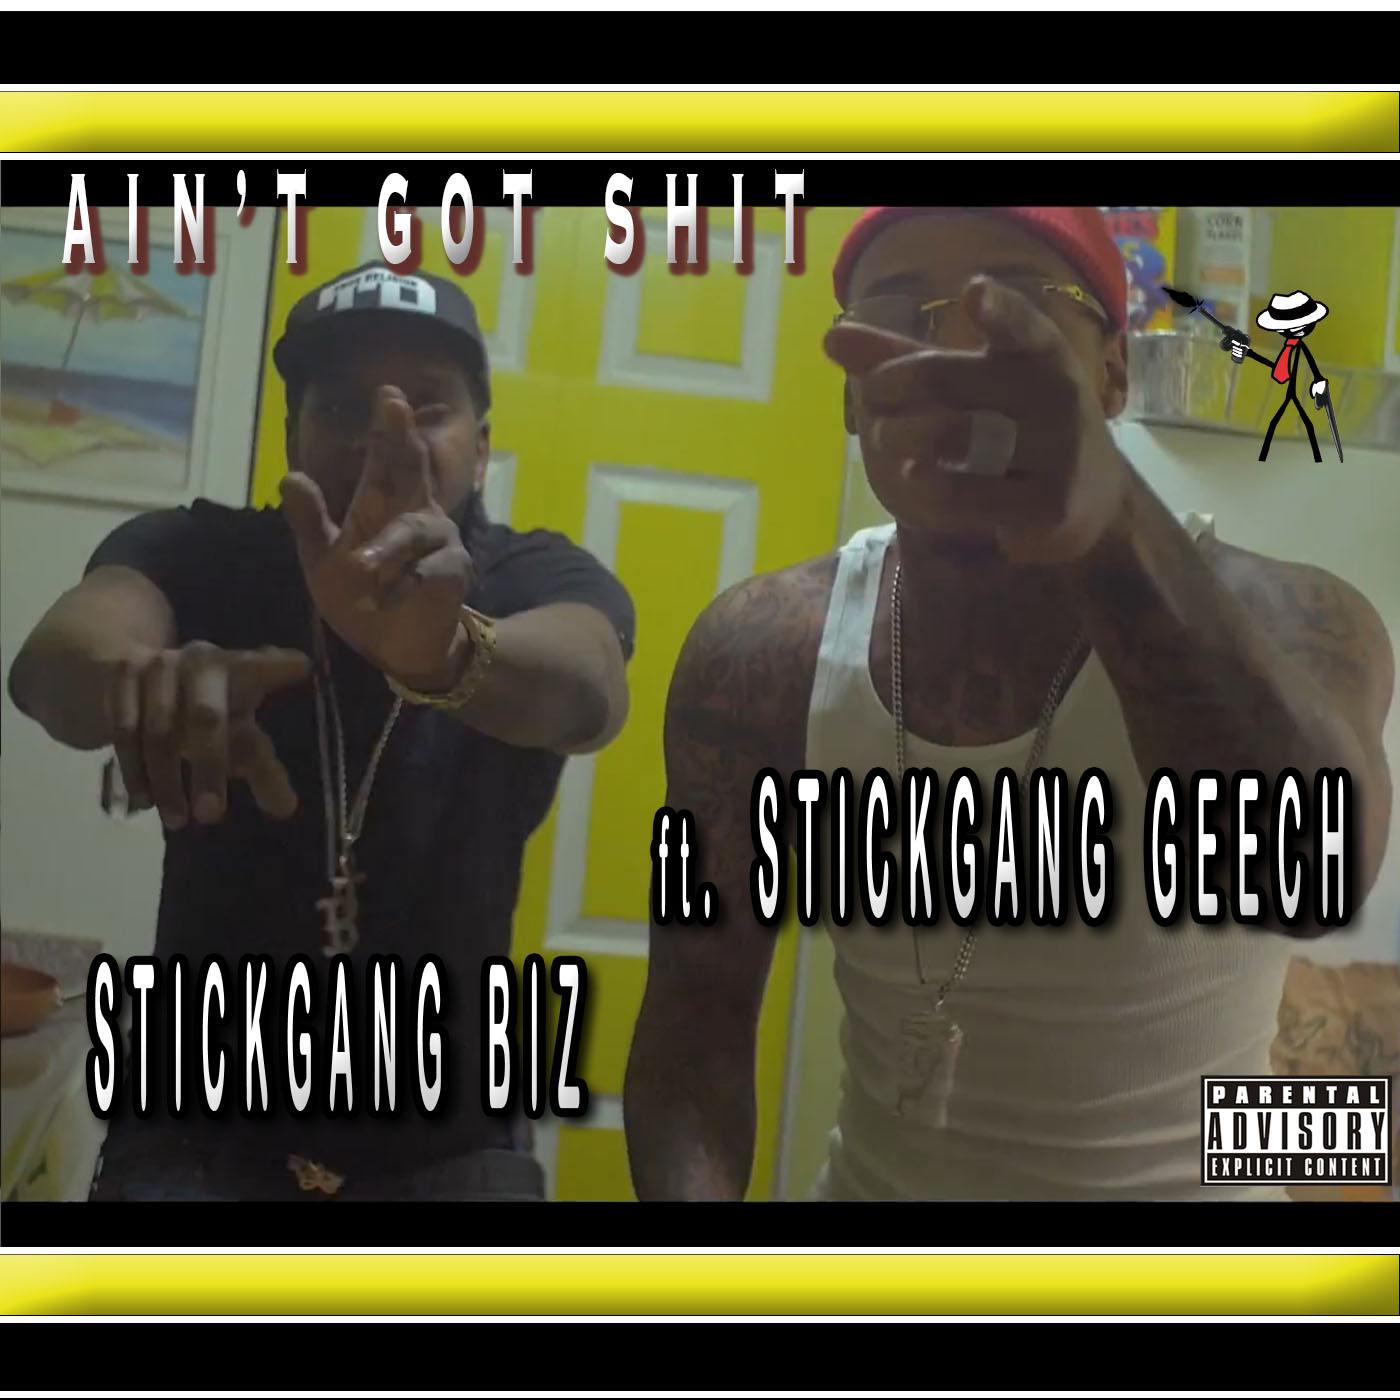 Ain't got shit by Stickgang Biz ft Geech